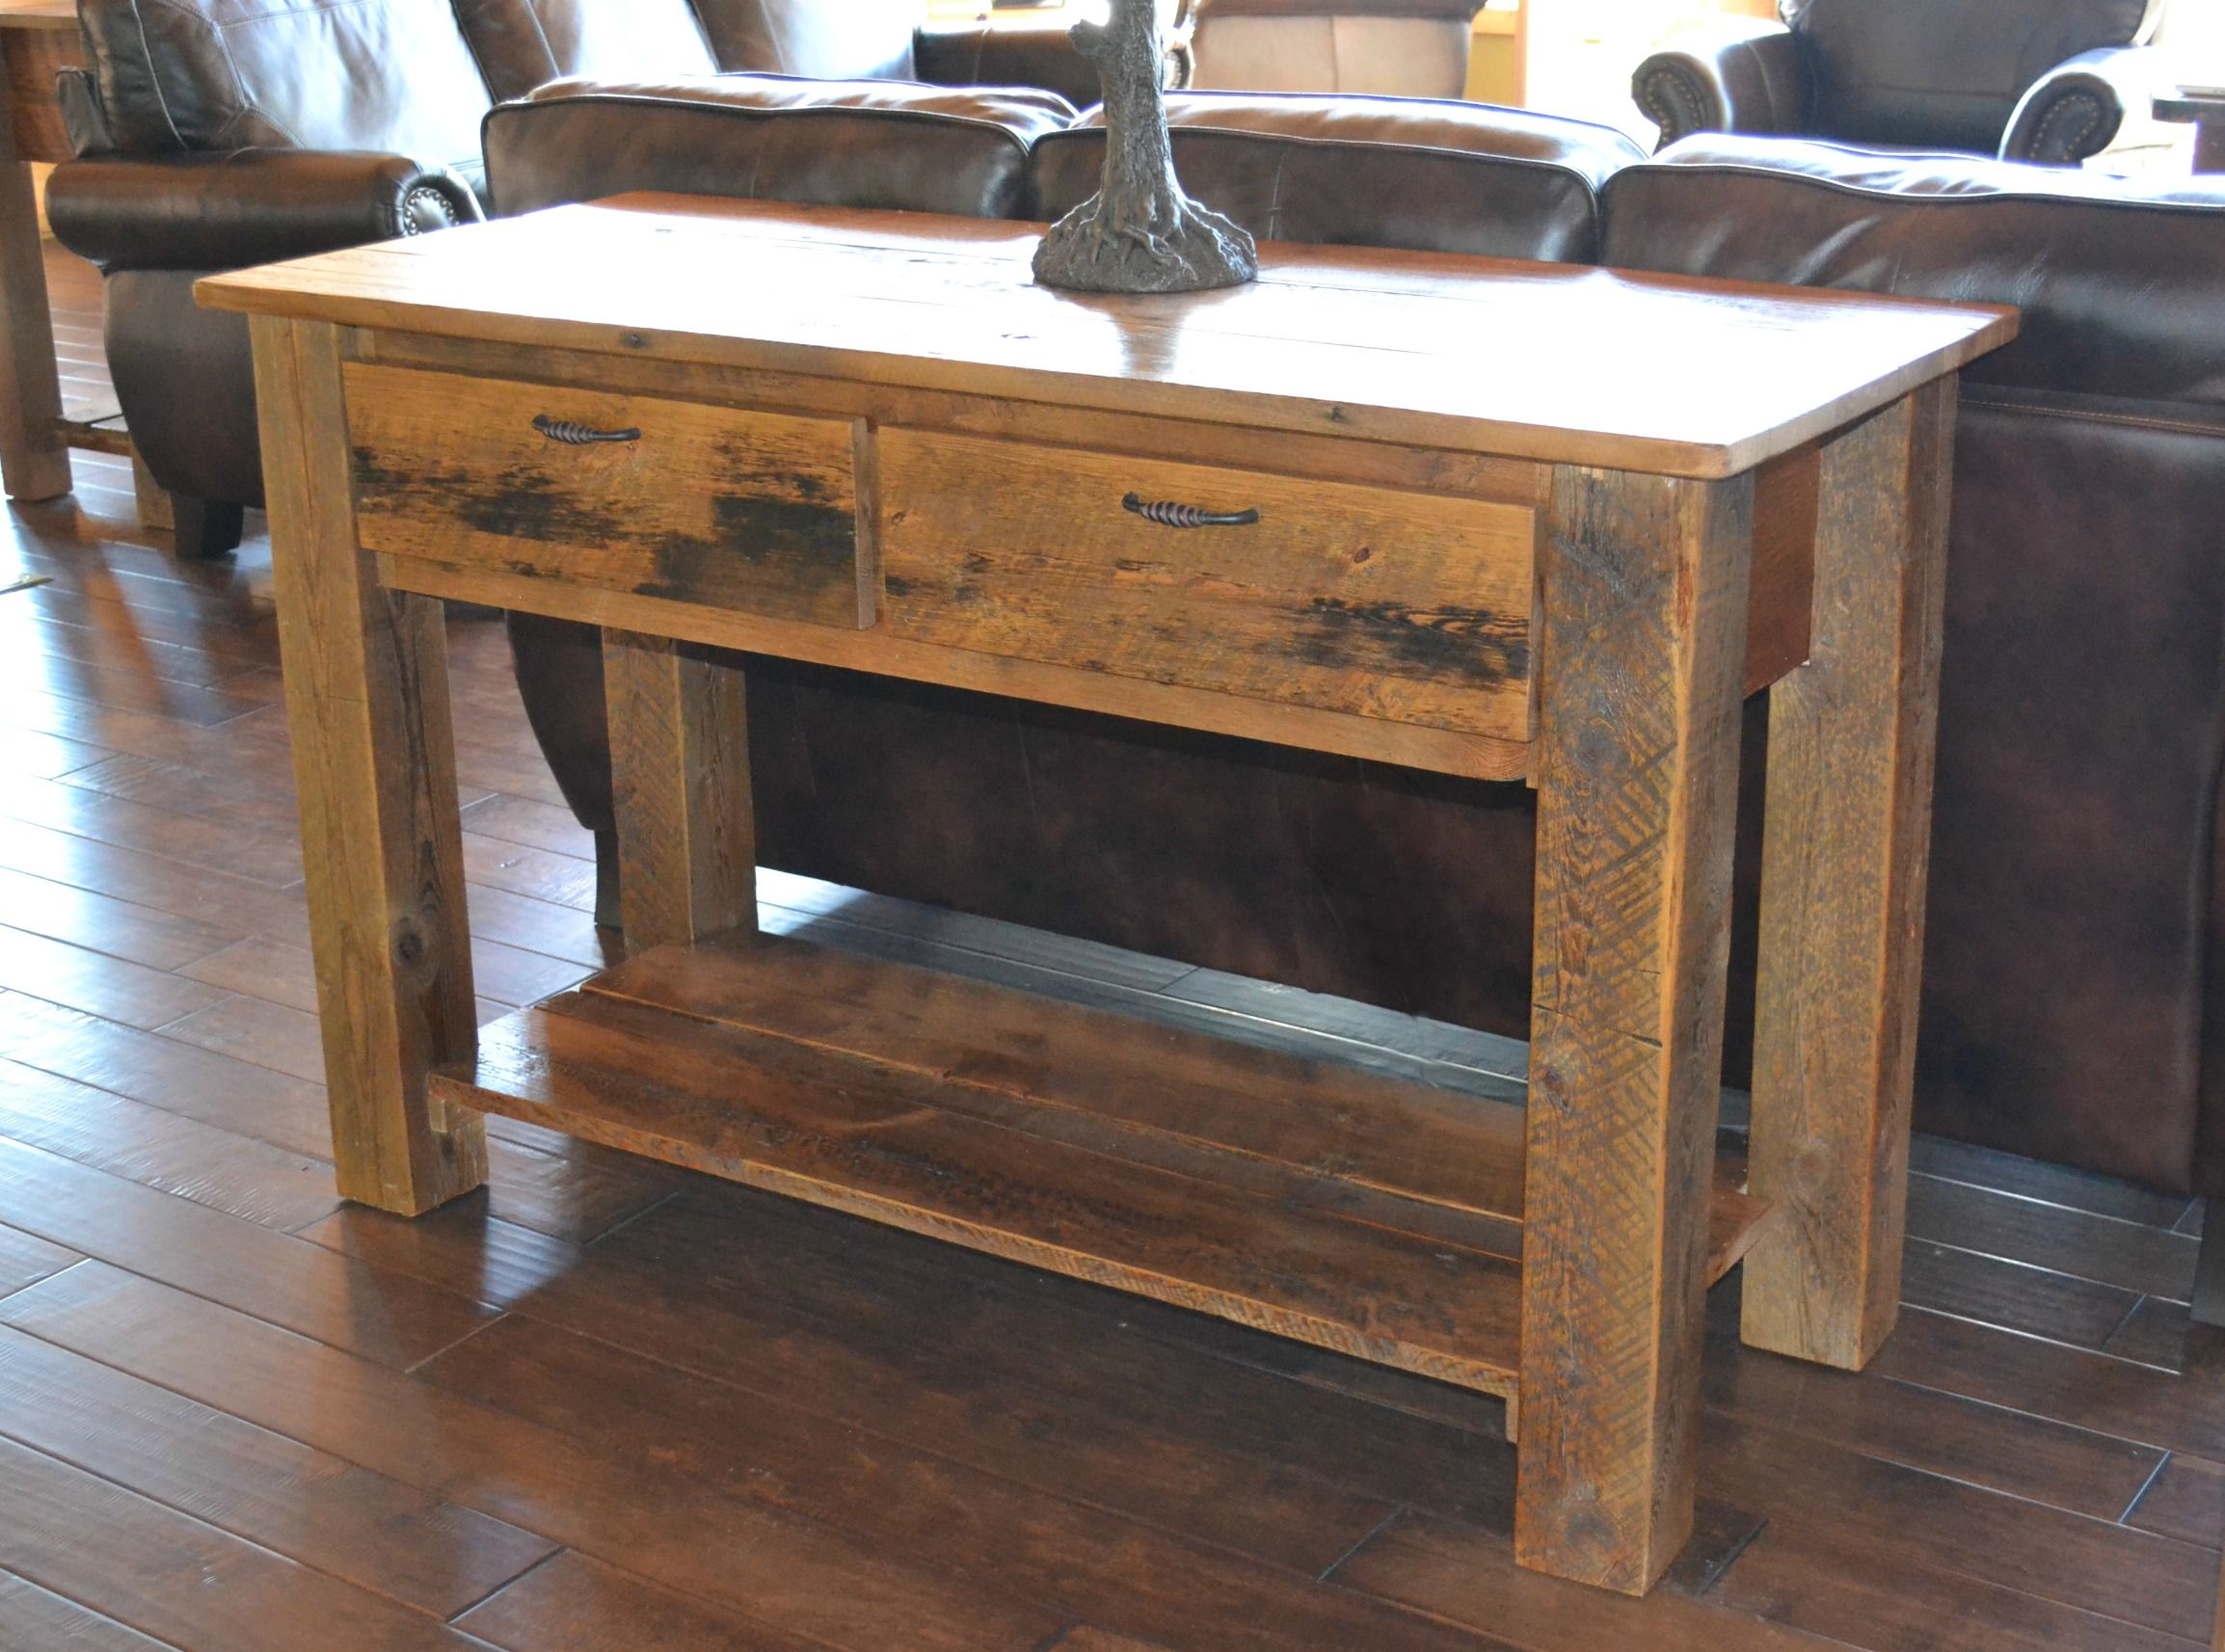 Reclaimed Barn Wood | Reclaimed Barn Wood Furniture ...